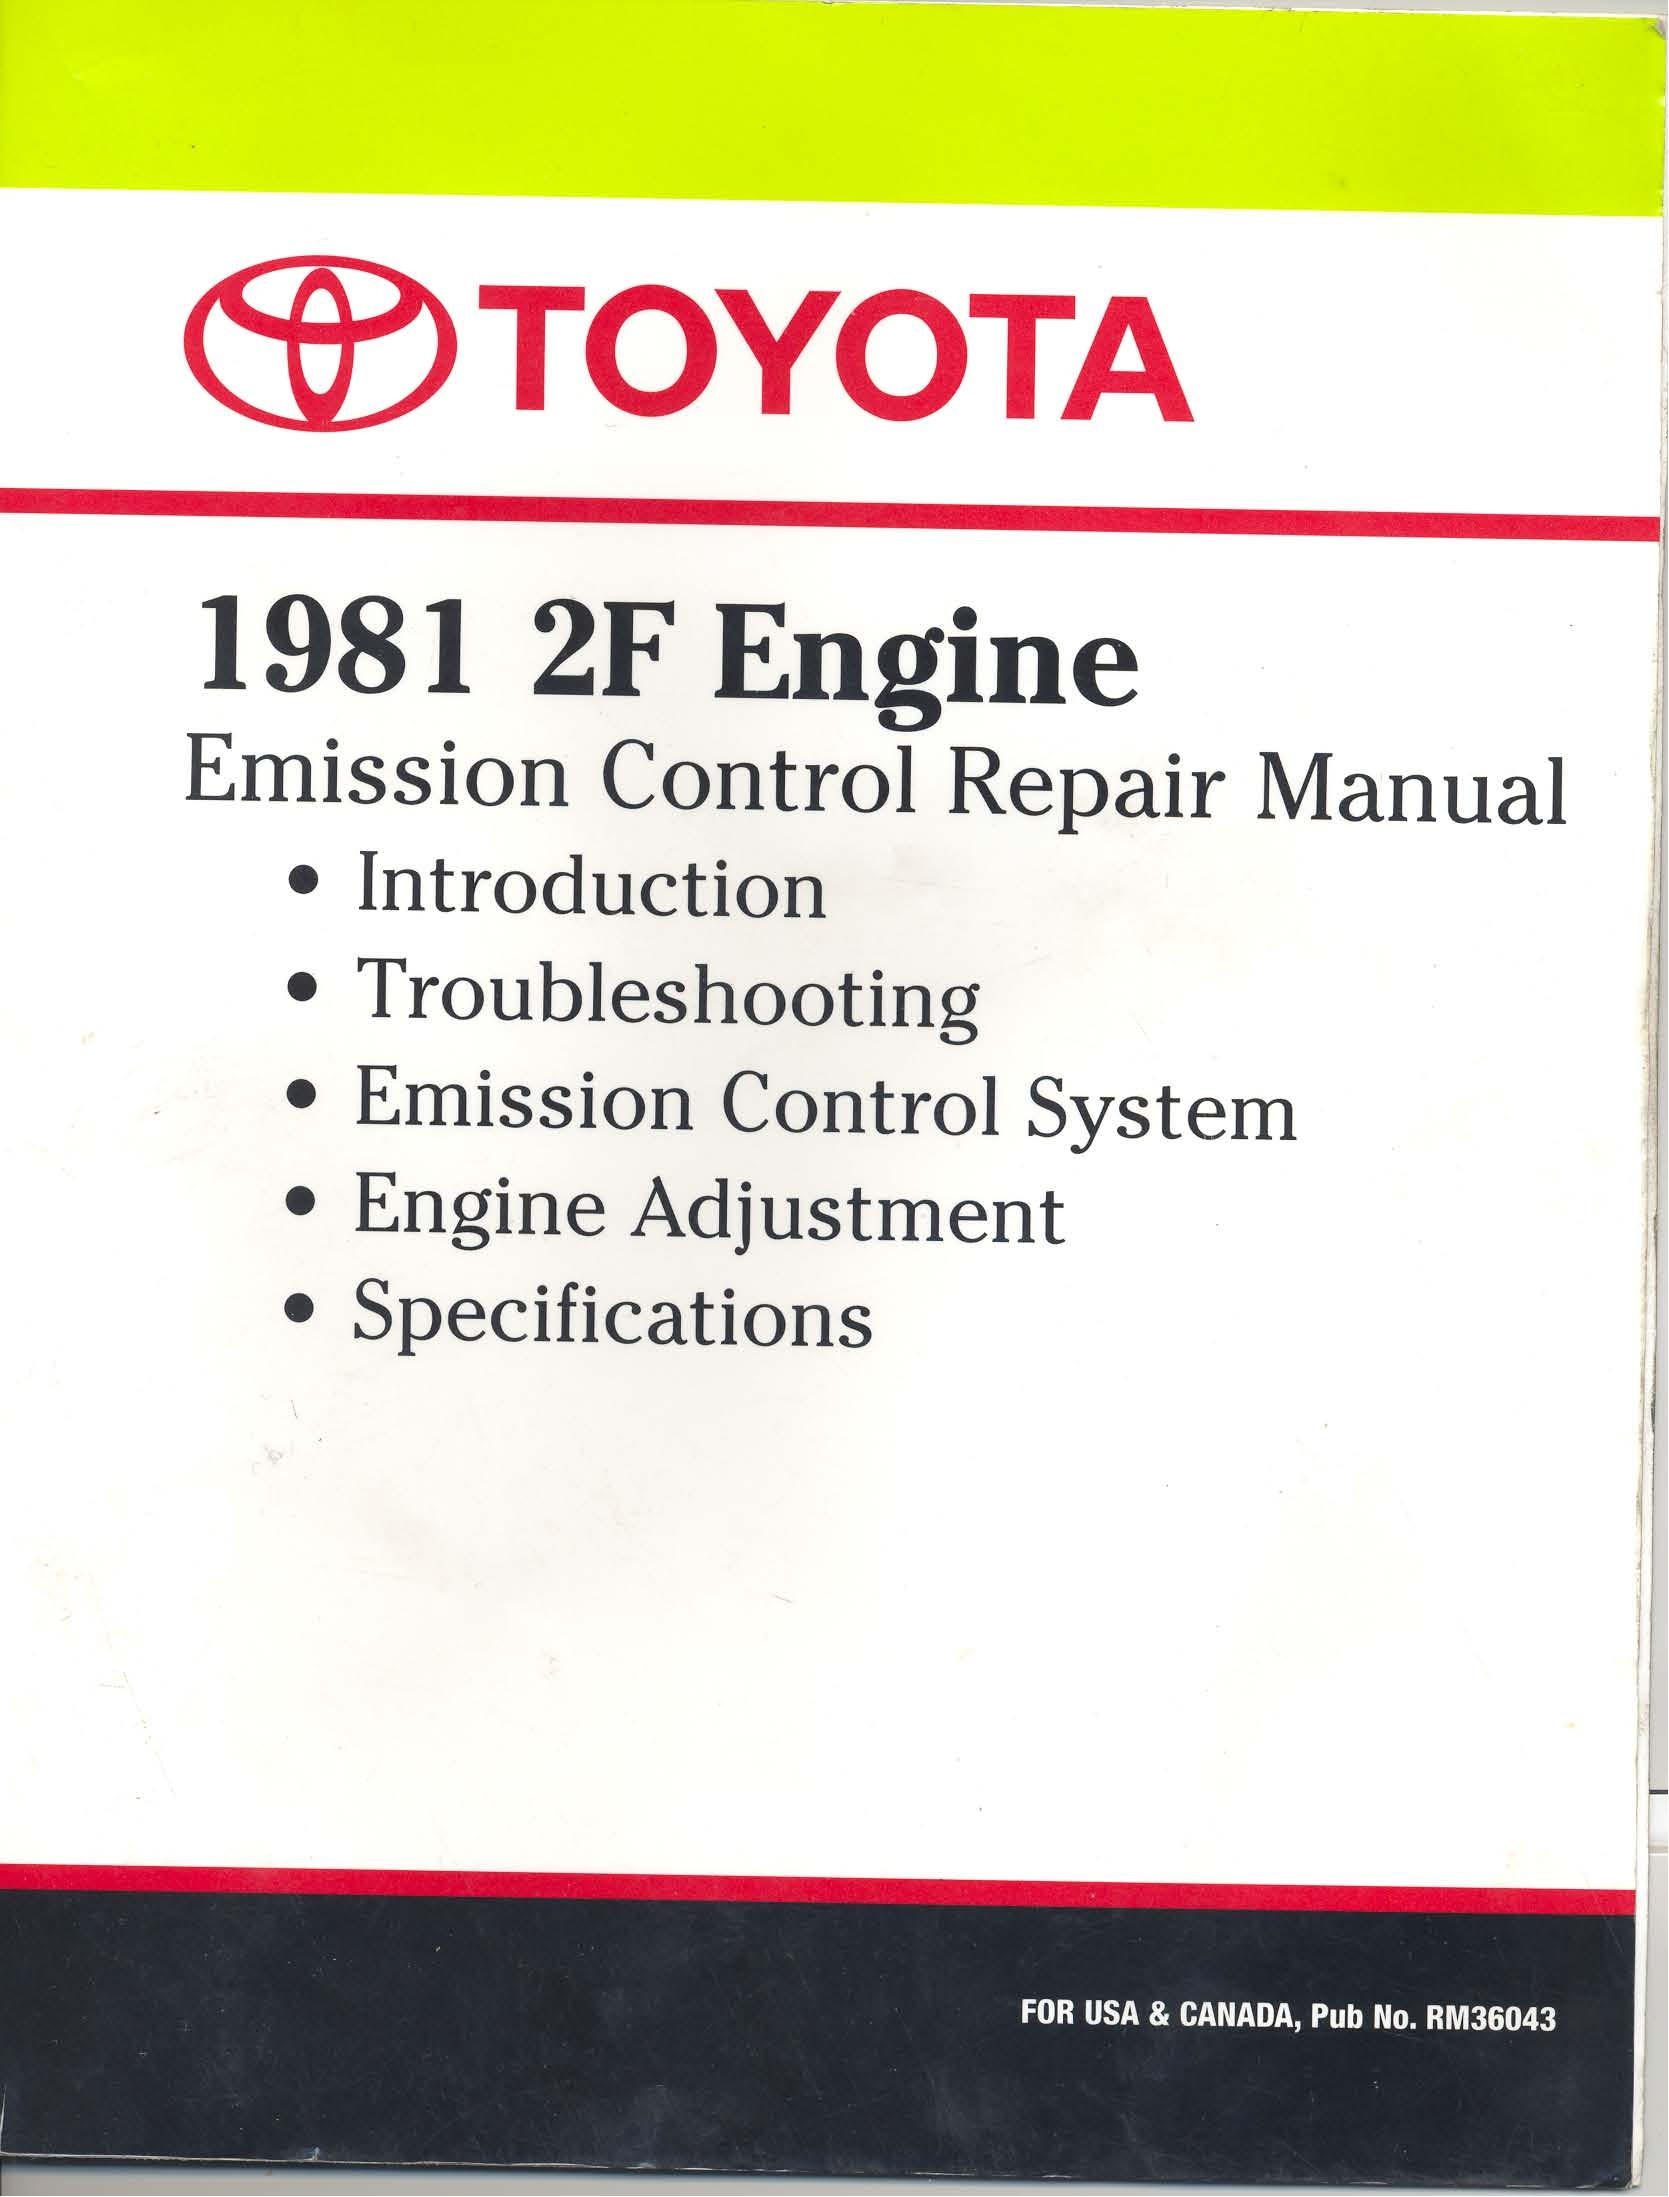 1981_2F_Engine_Emissions_Control_Repair_Manual_Page_1